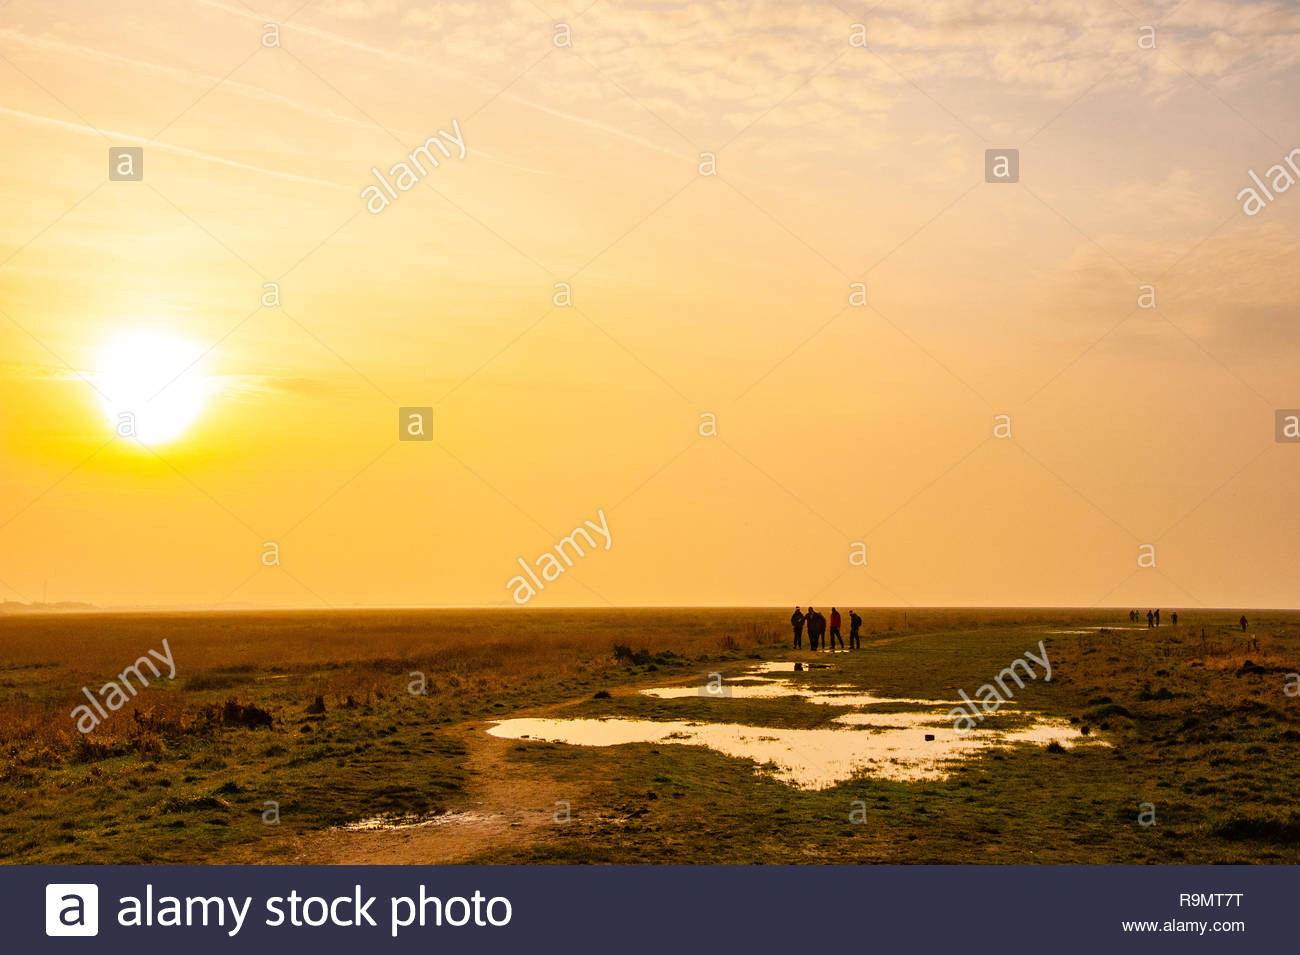 Southport, England, Uk, Europe. 26th Dec, 2018. UK Weather, Southport, Merseyside, England UK Boxing Day 26th December 2018. People walking off their Christmas excesses on a slightly misty Boxing Day afternoon at RSPB Marshside Nature Reserve as the light starts to fade in Southport, Merseyside, Lancashire, England UK Credit: Christopher Canty Photography/Alamy Live News Stock Photo